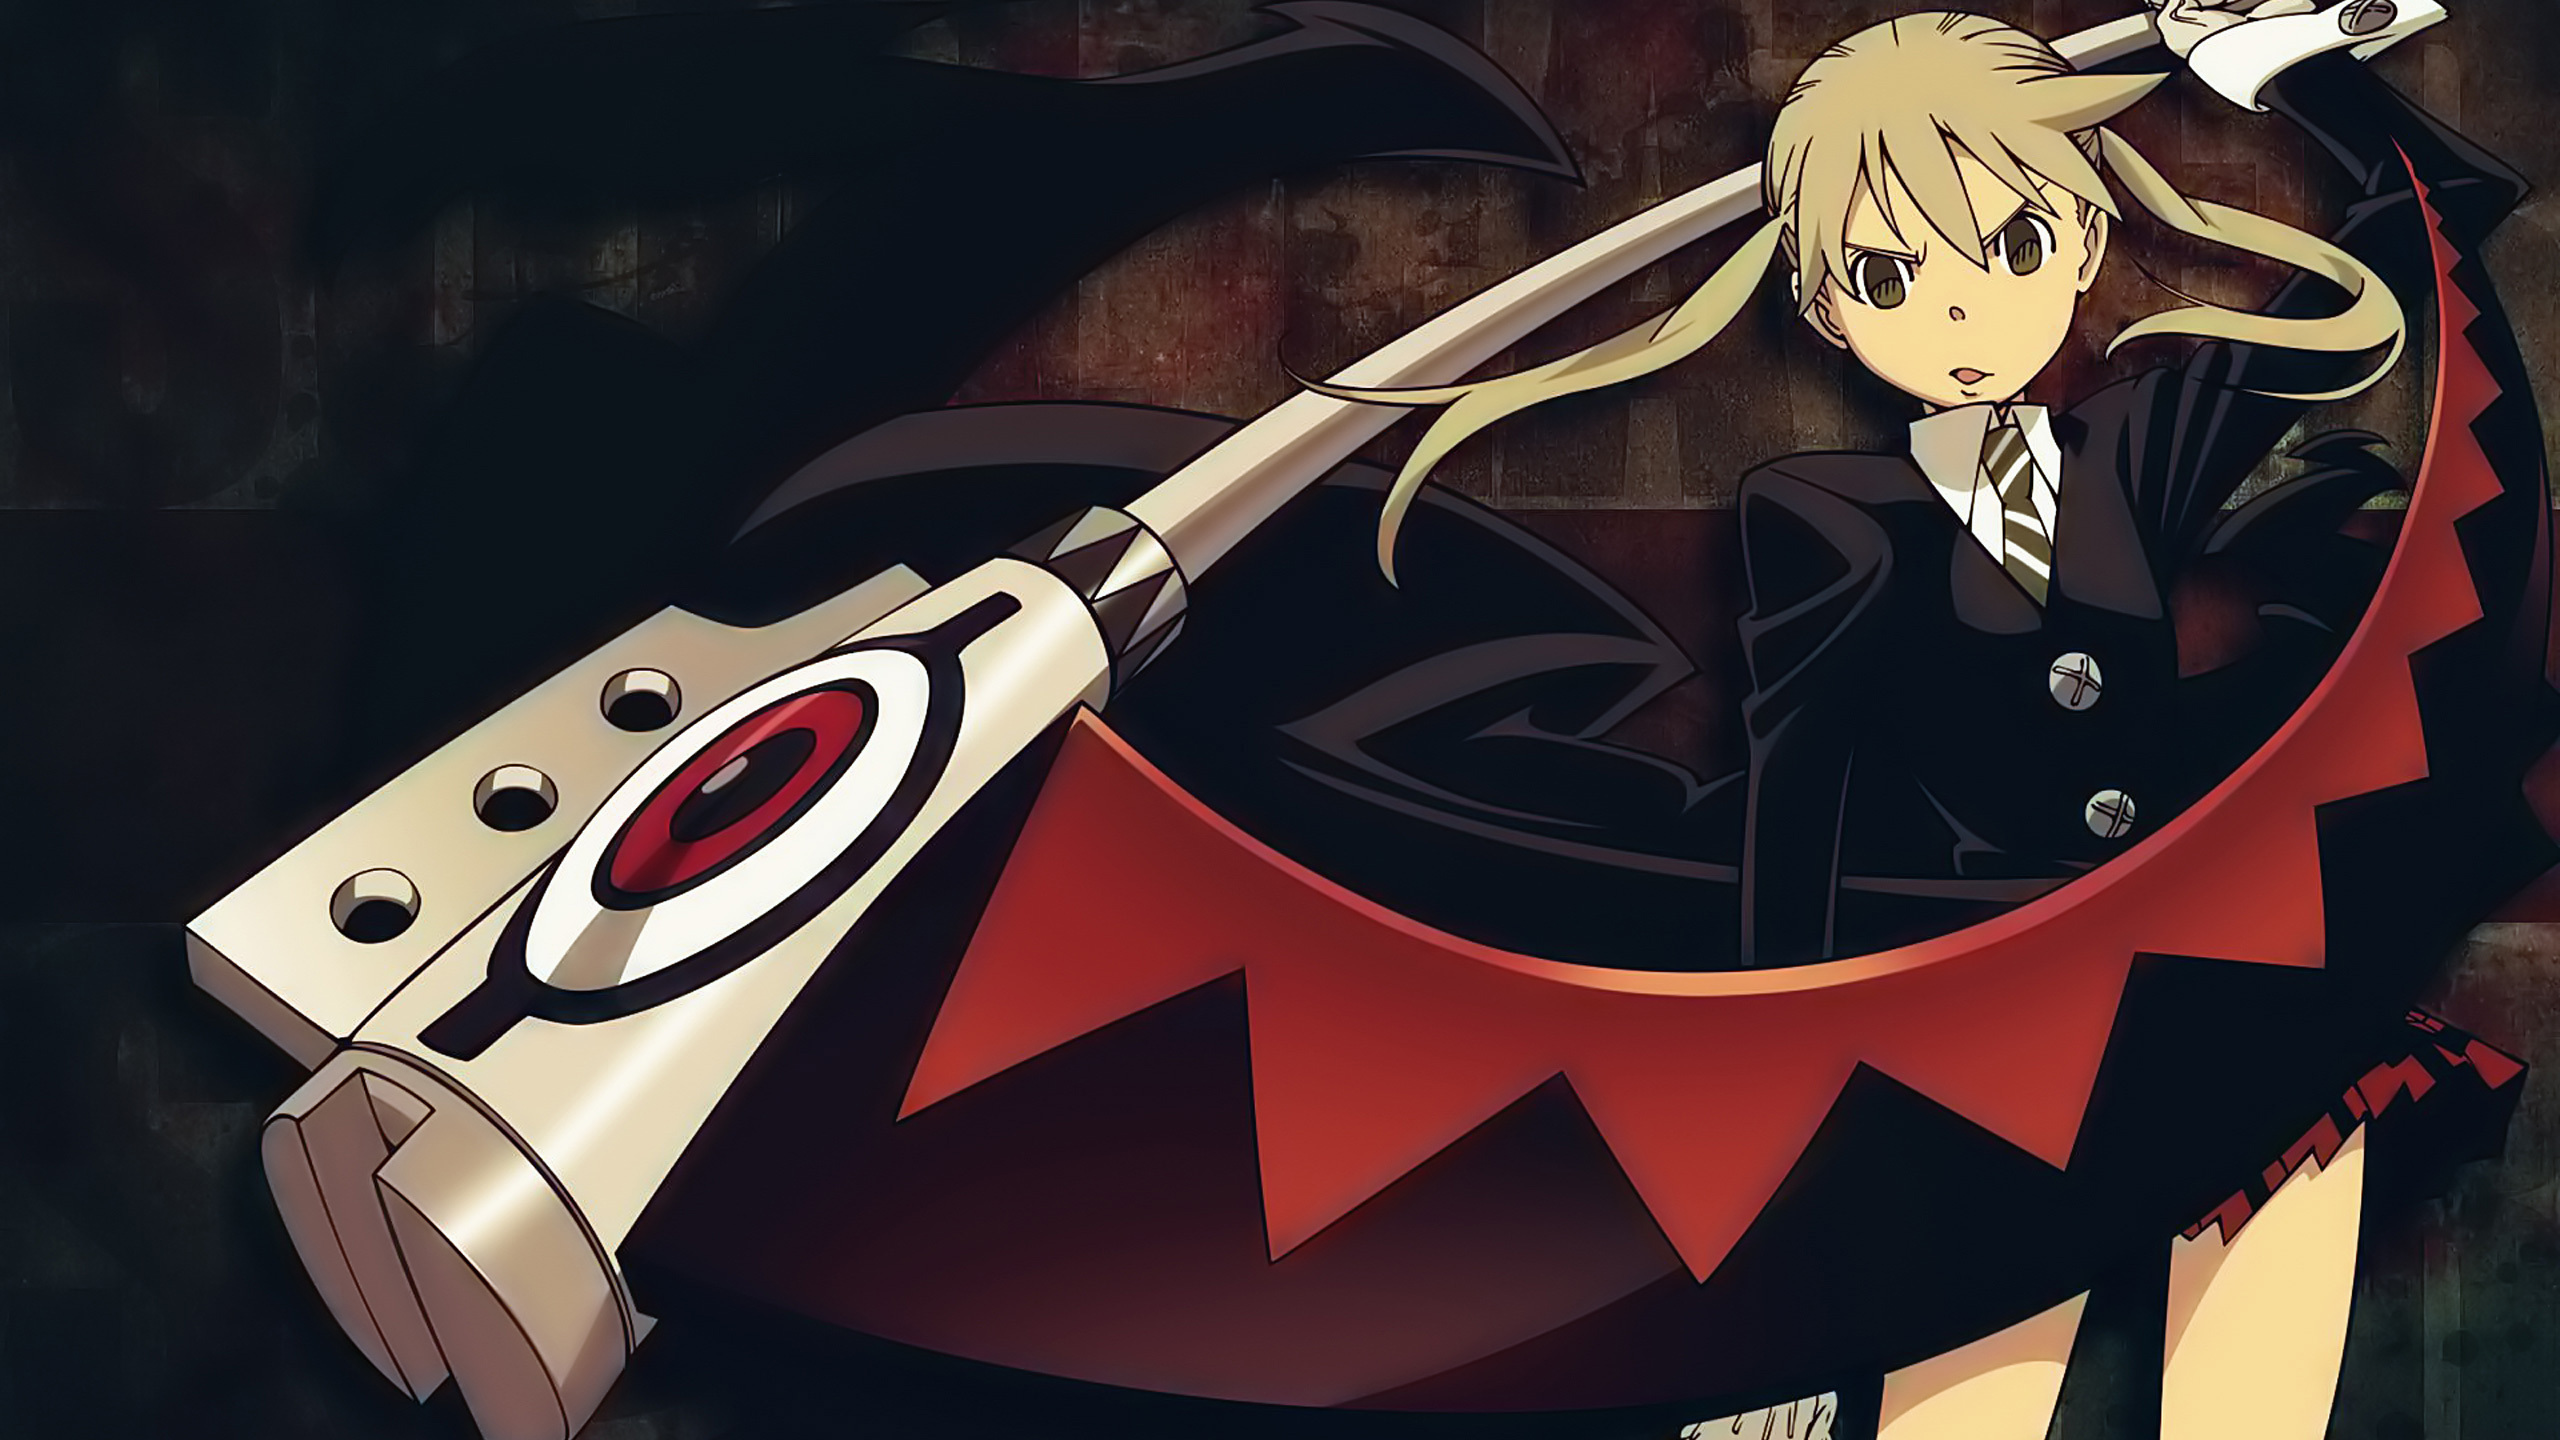 Soul Eater HD Wallpaper | Background Image | 2560x1440 ...